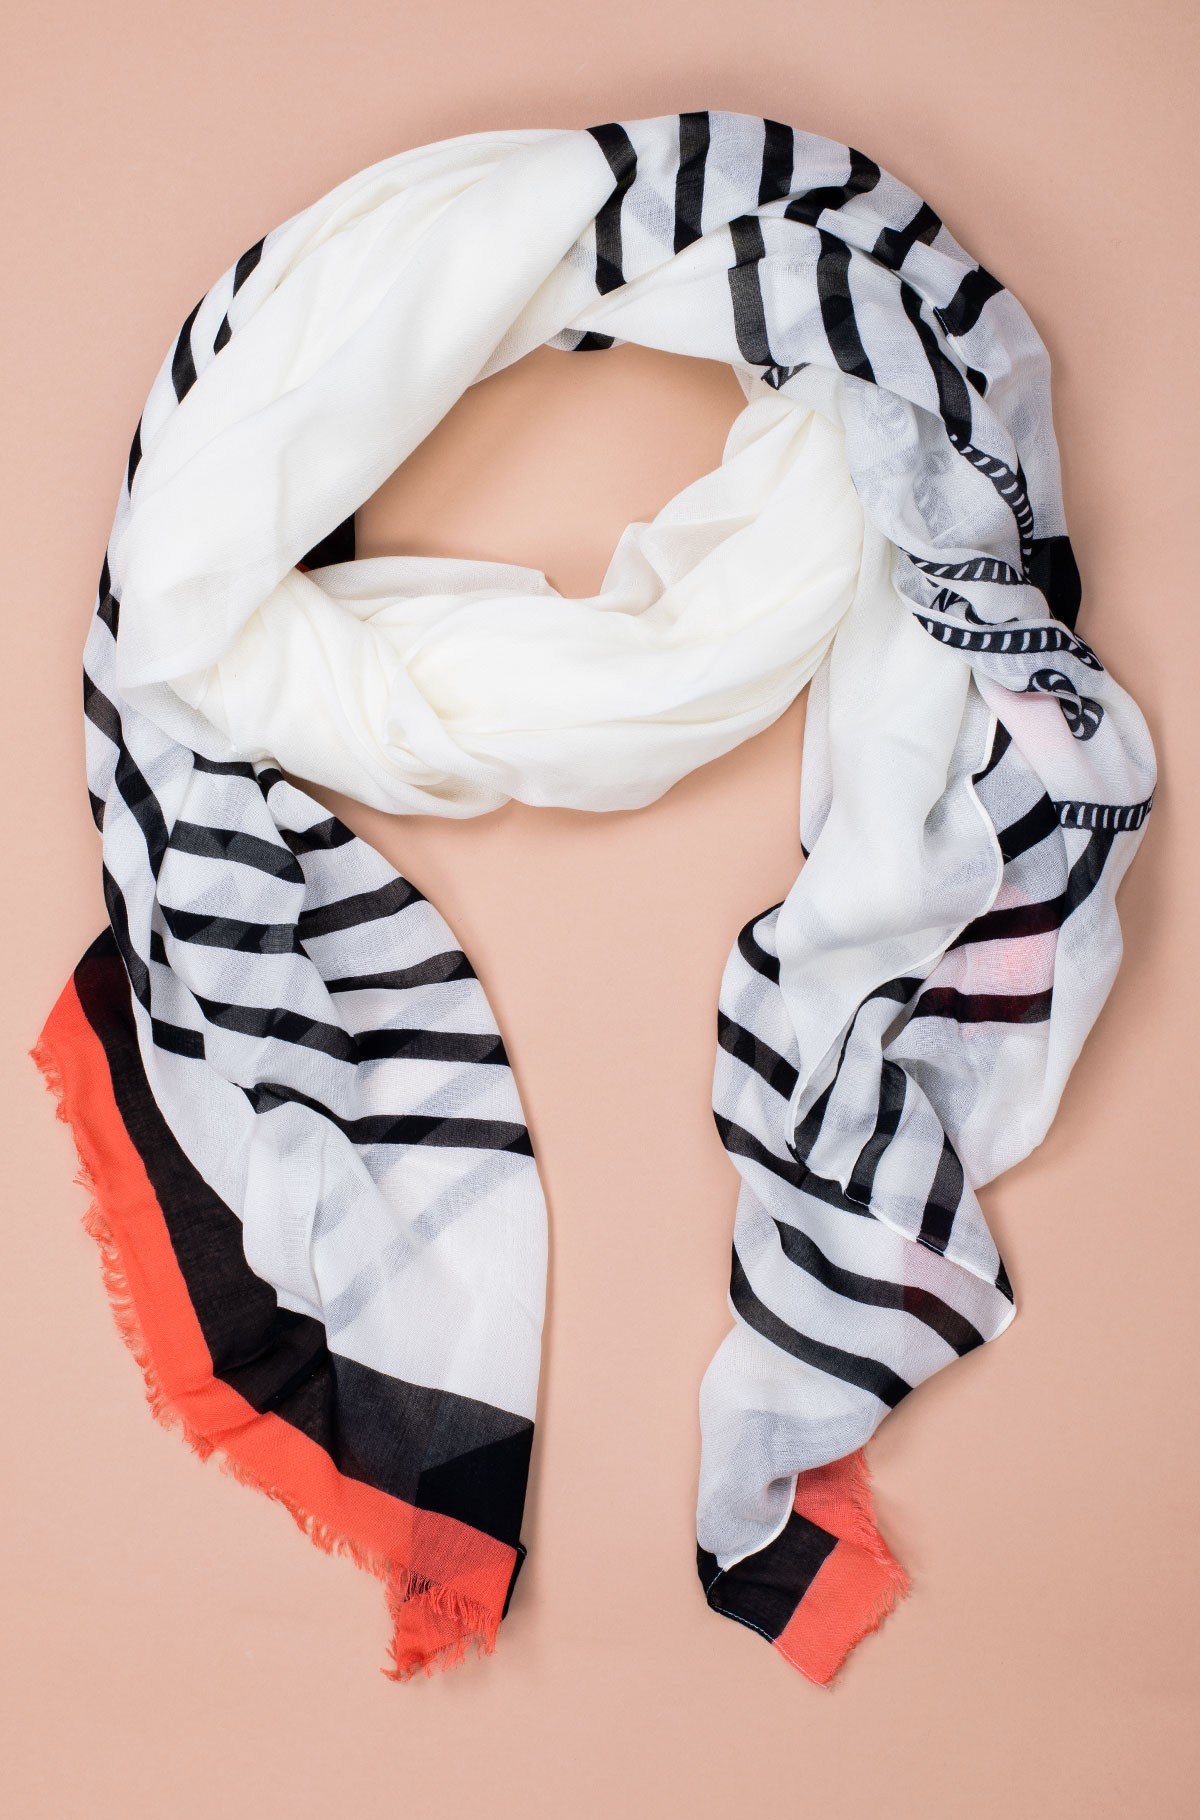 Sall POPPY BRETON STRIPES SCARF-full-1